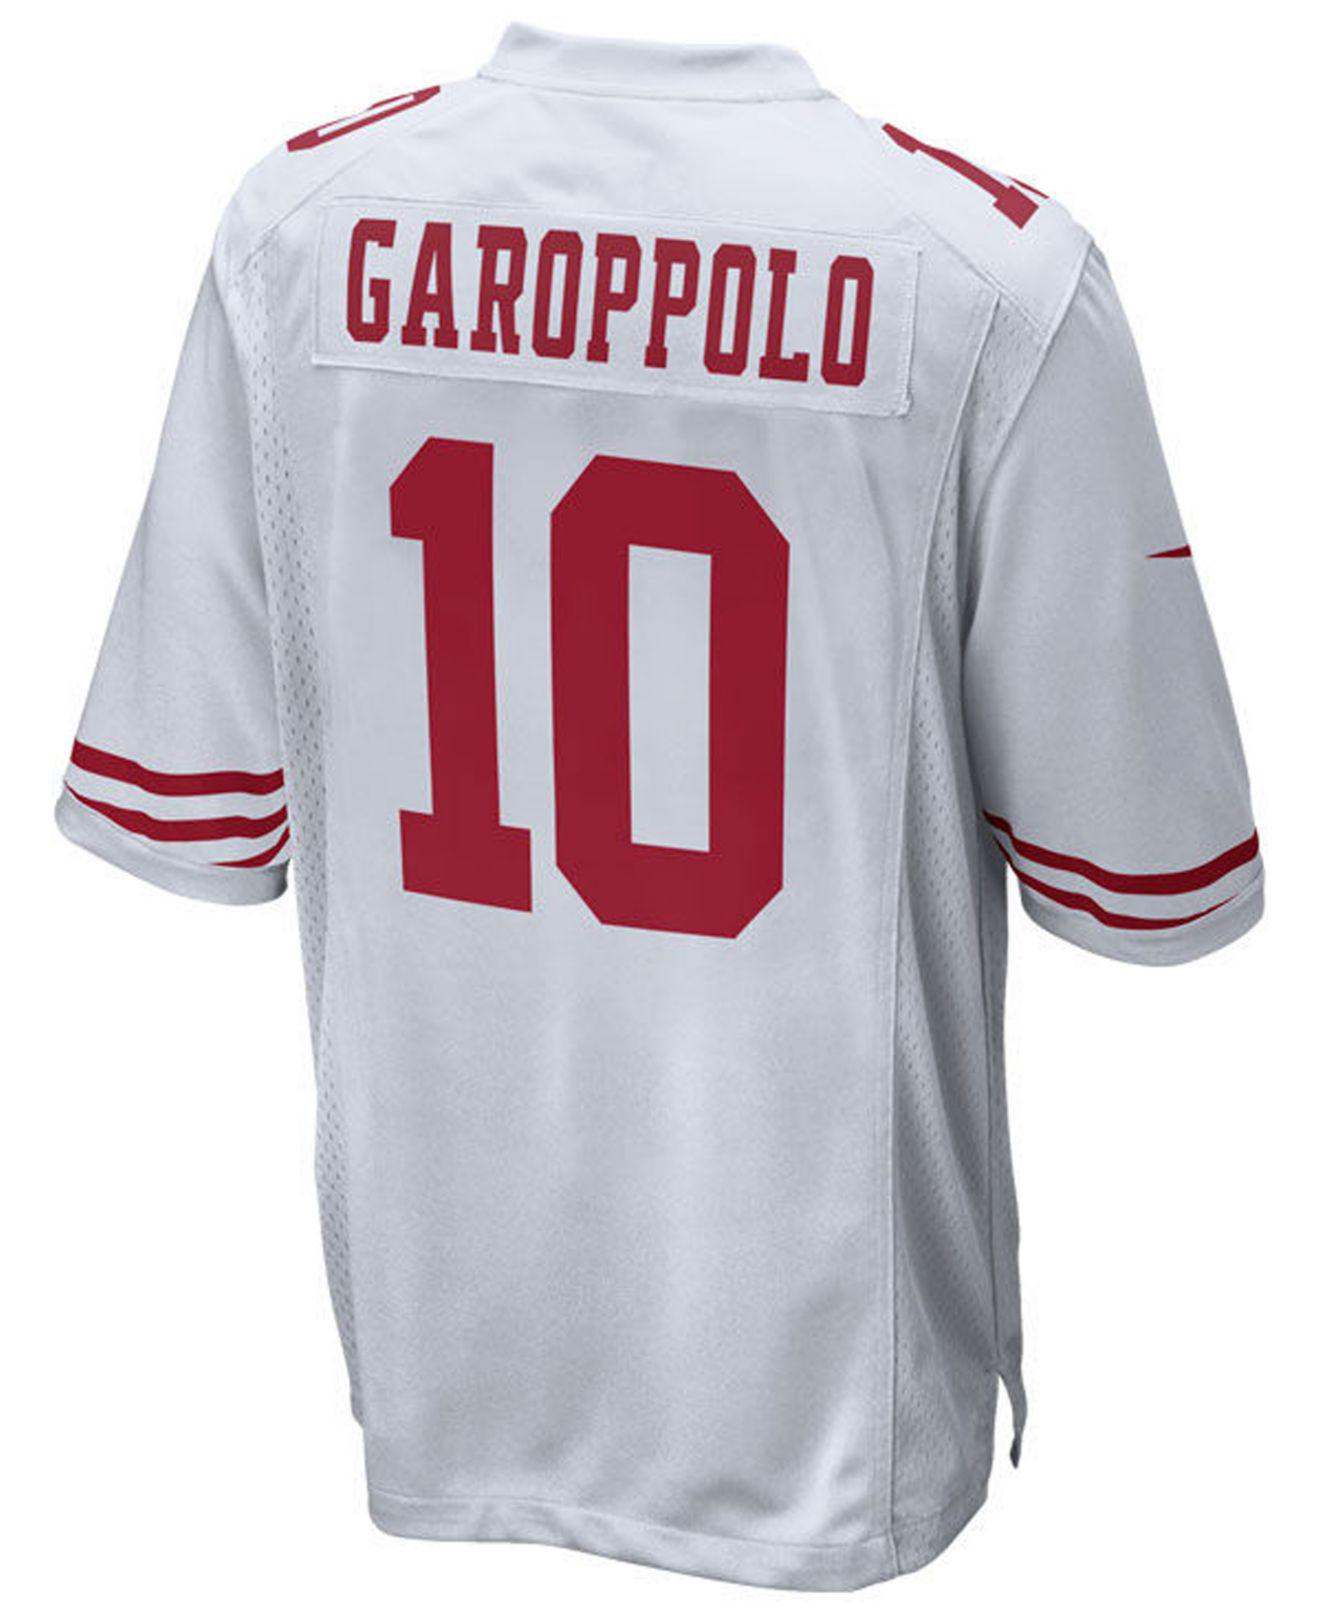 e2d29046fa5 Nike Jimmy Garoppolo San Francisco 49ers Game Jersey in White for ...